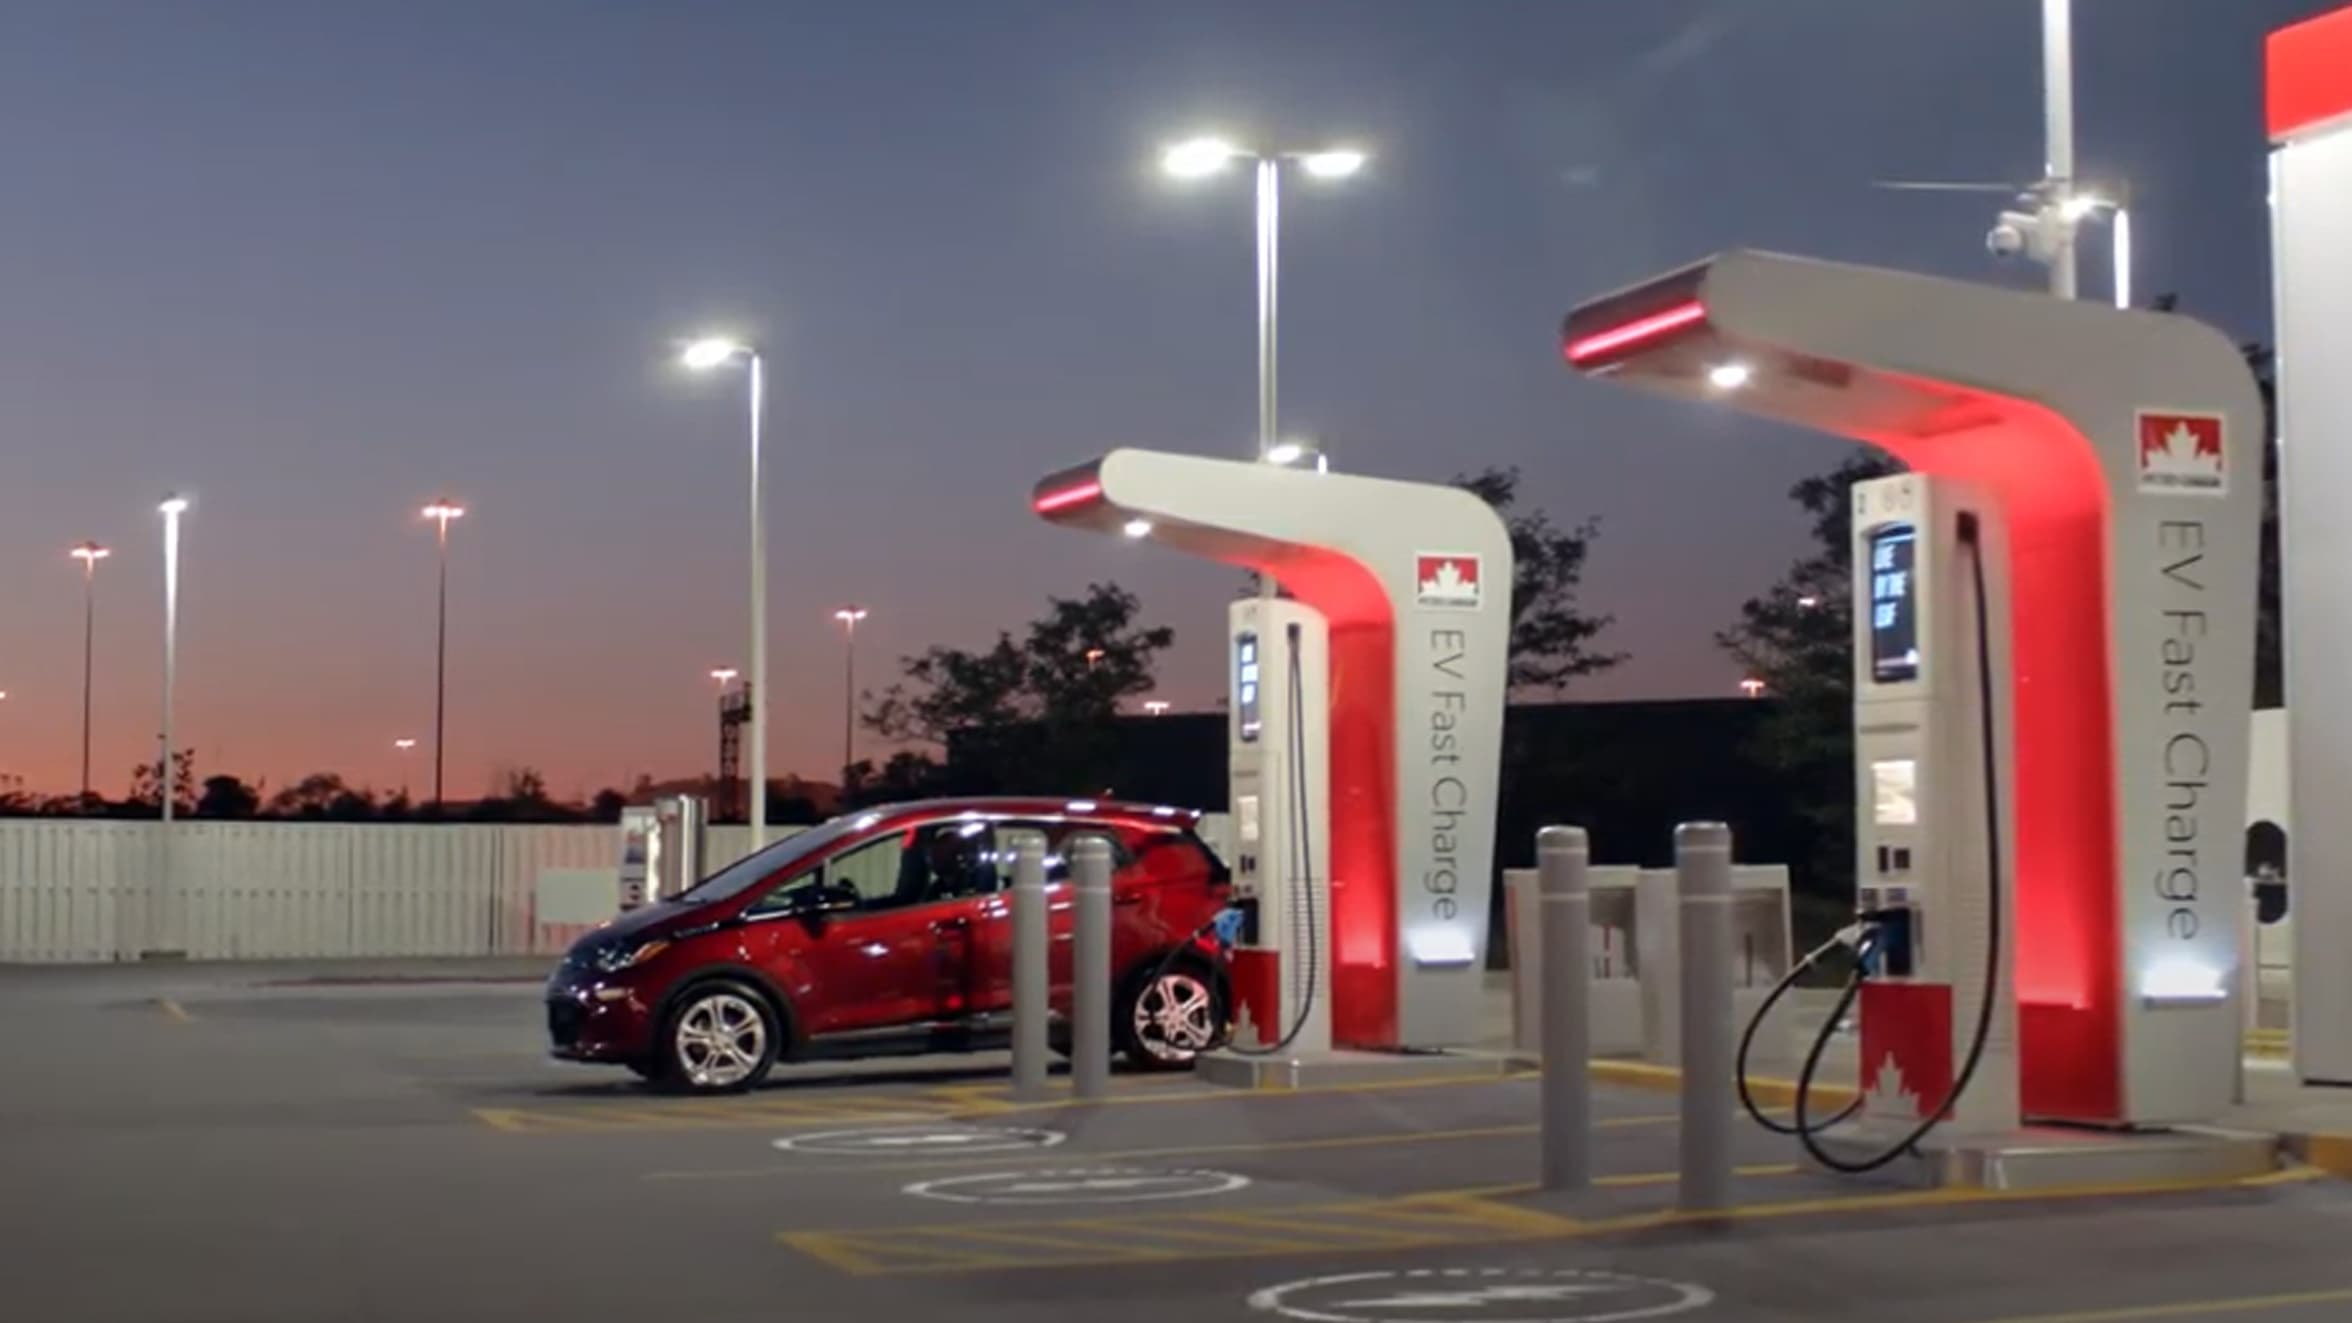 A car charges at a Petro-Canada EV fast charger.